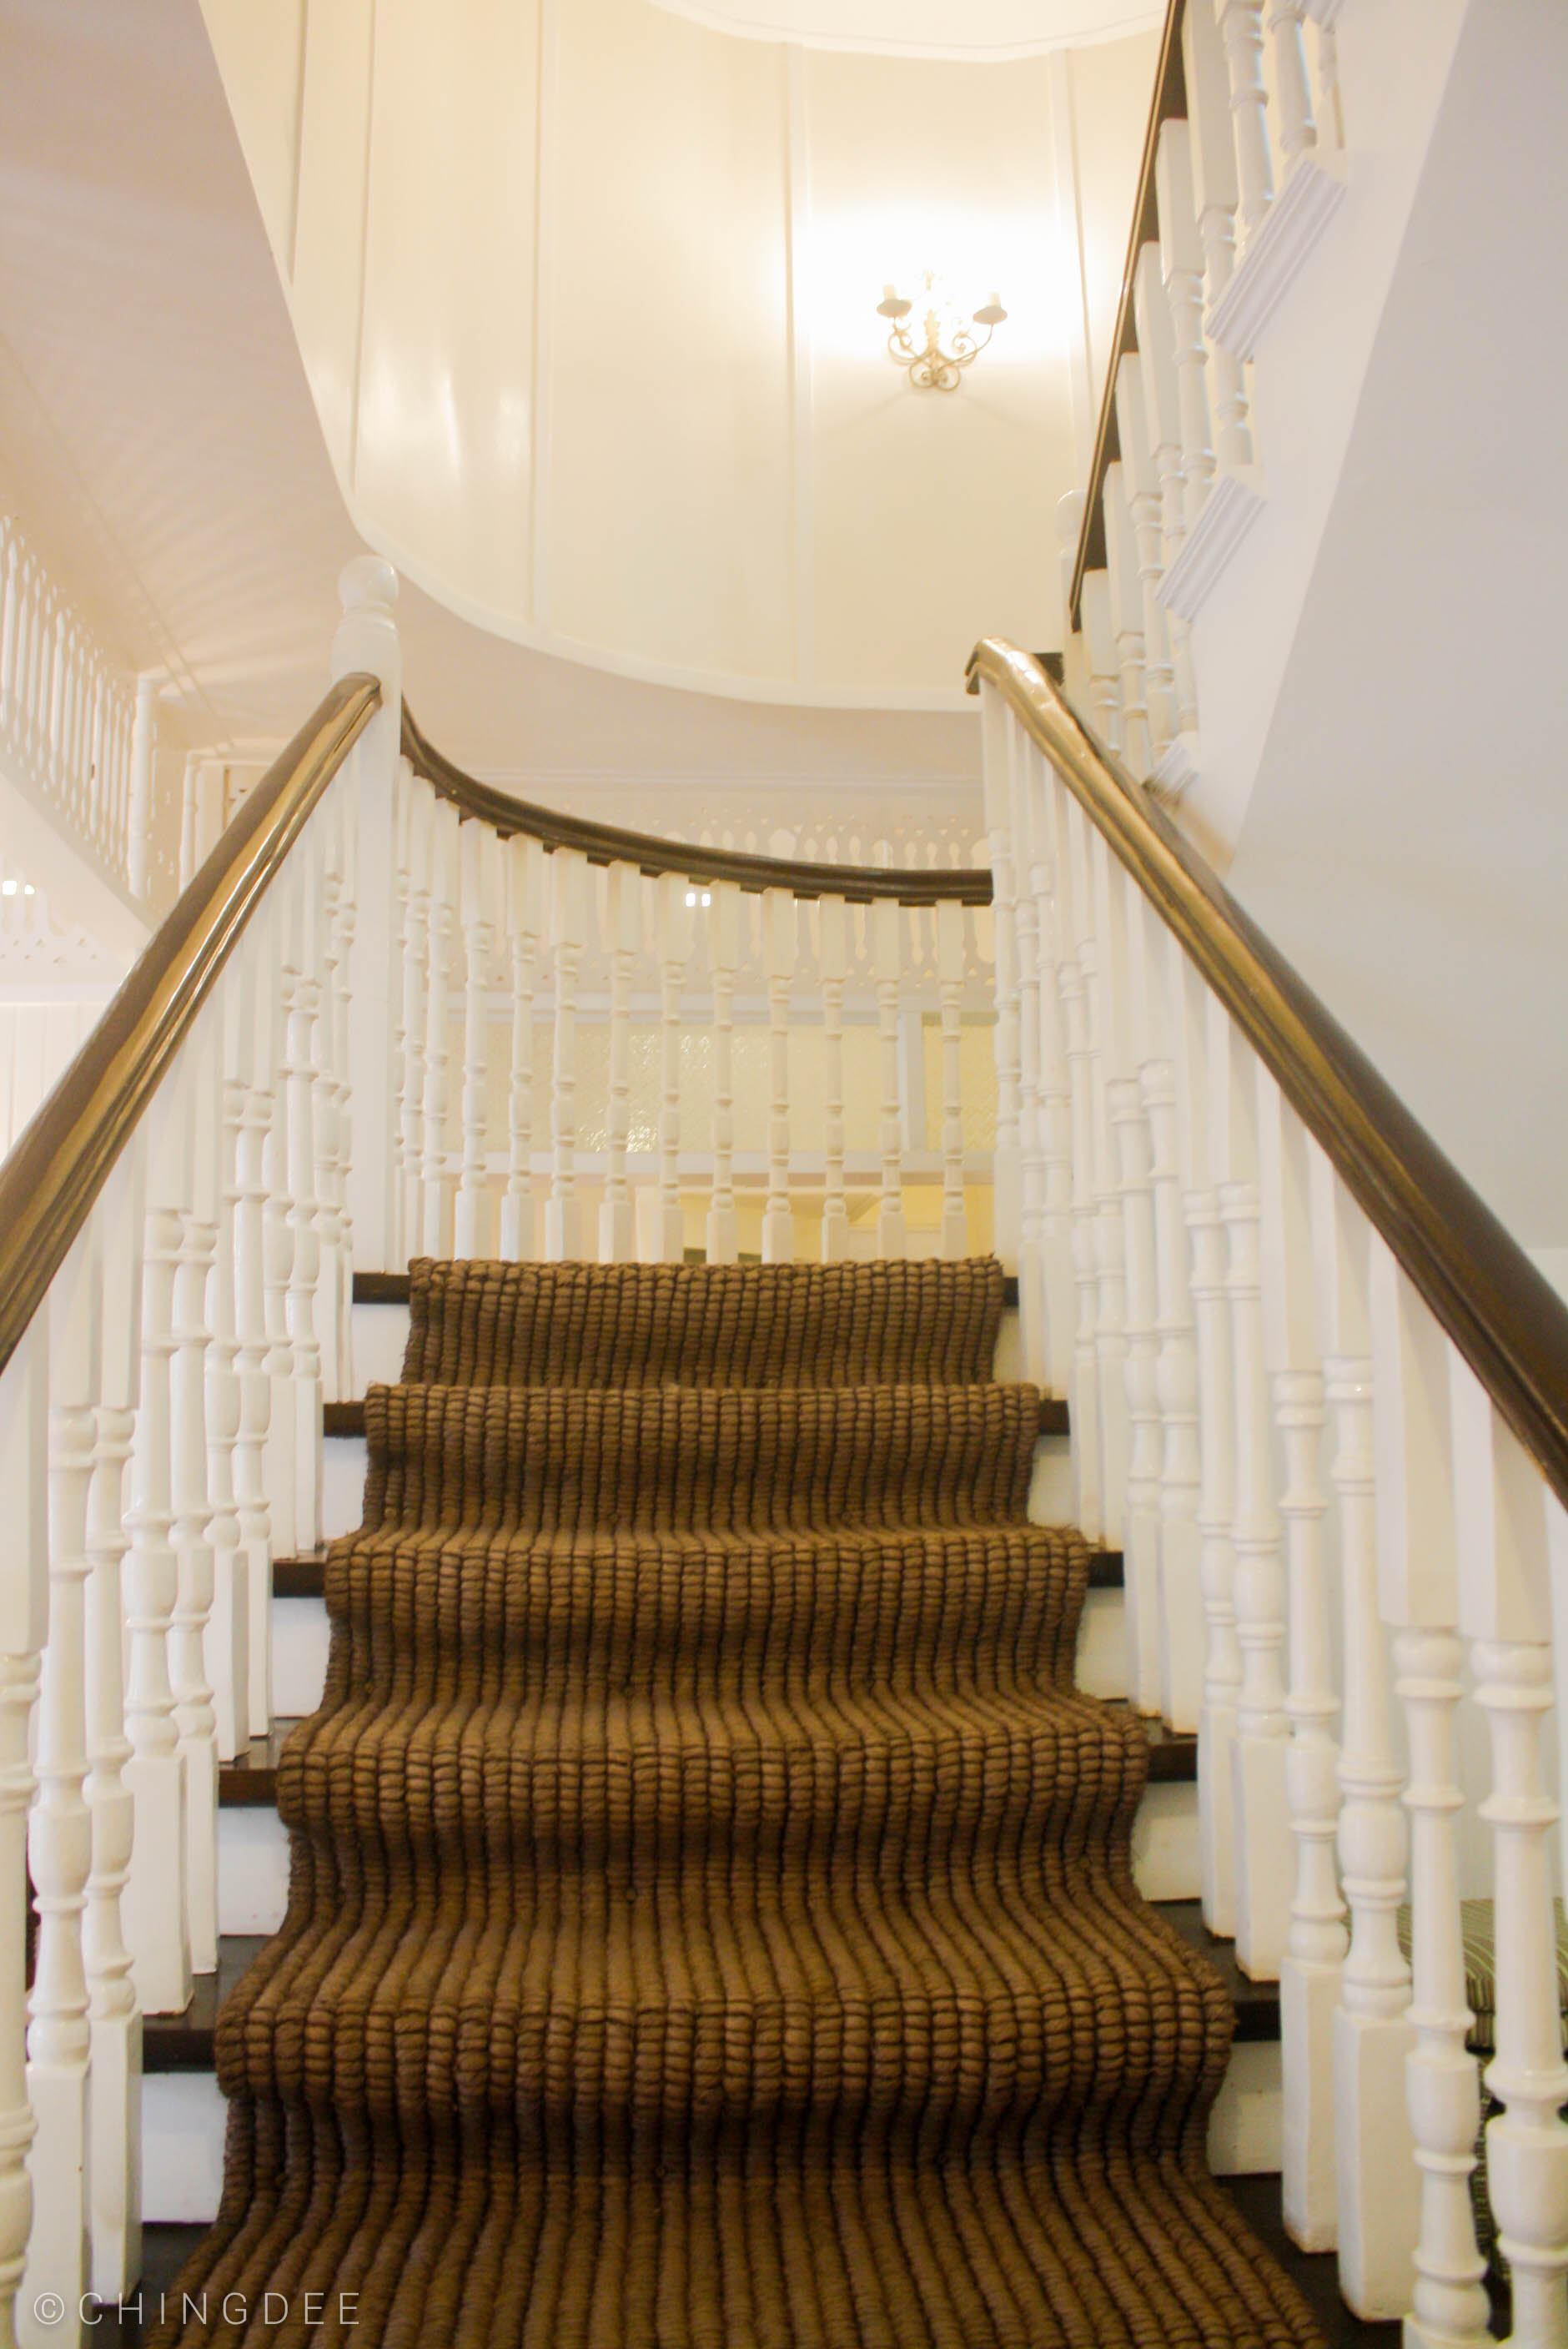 The staircase lined with the restored abaca rug